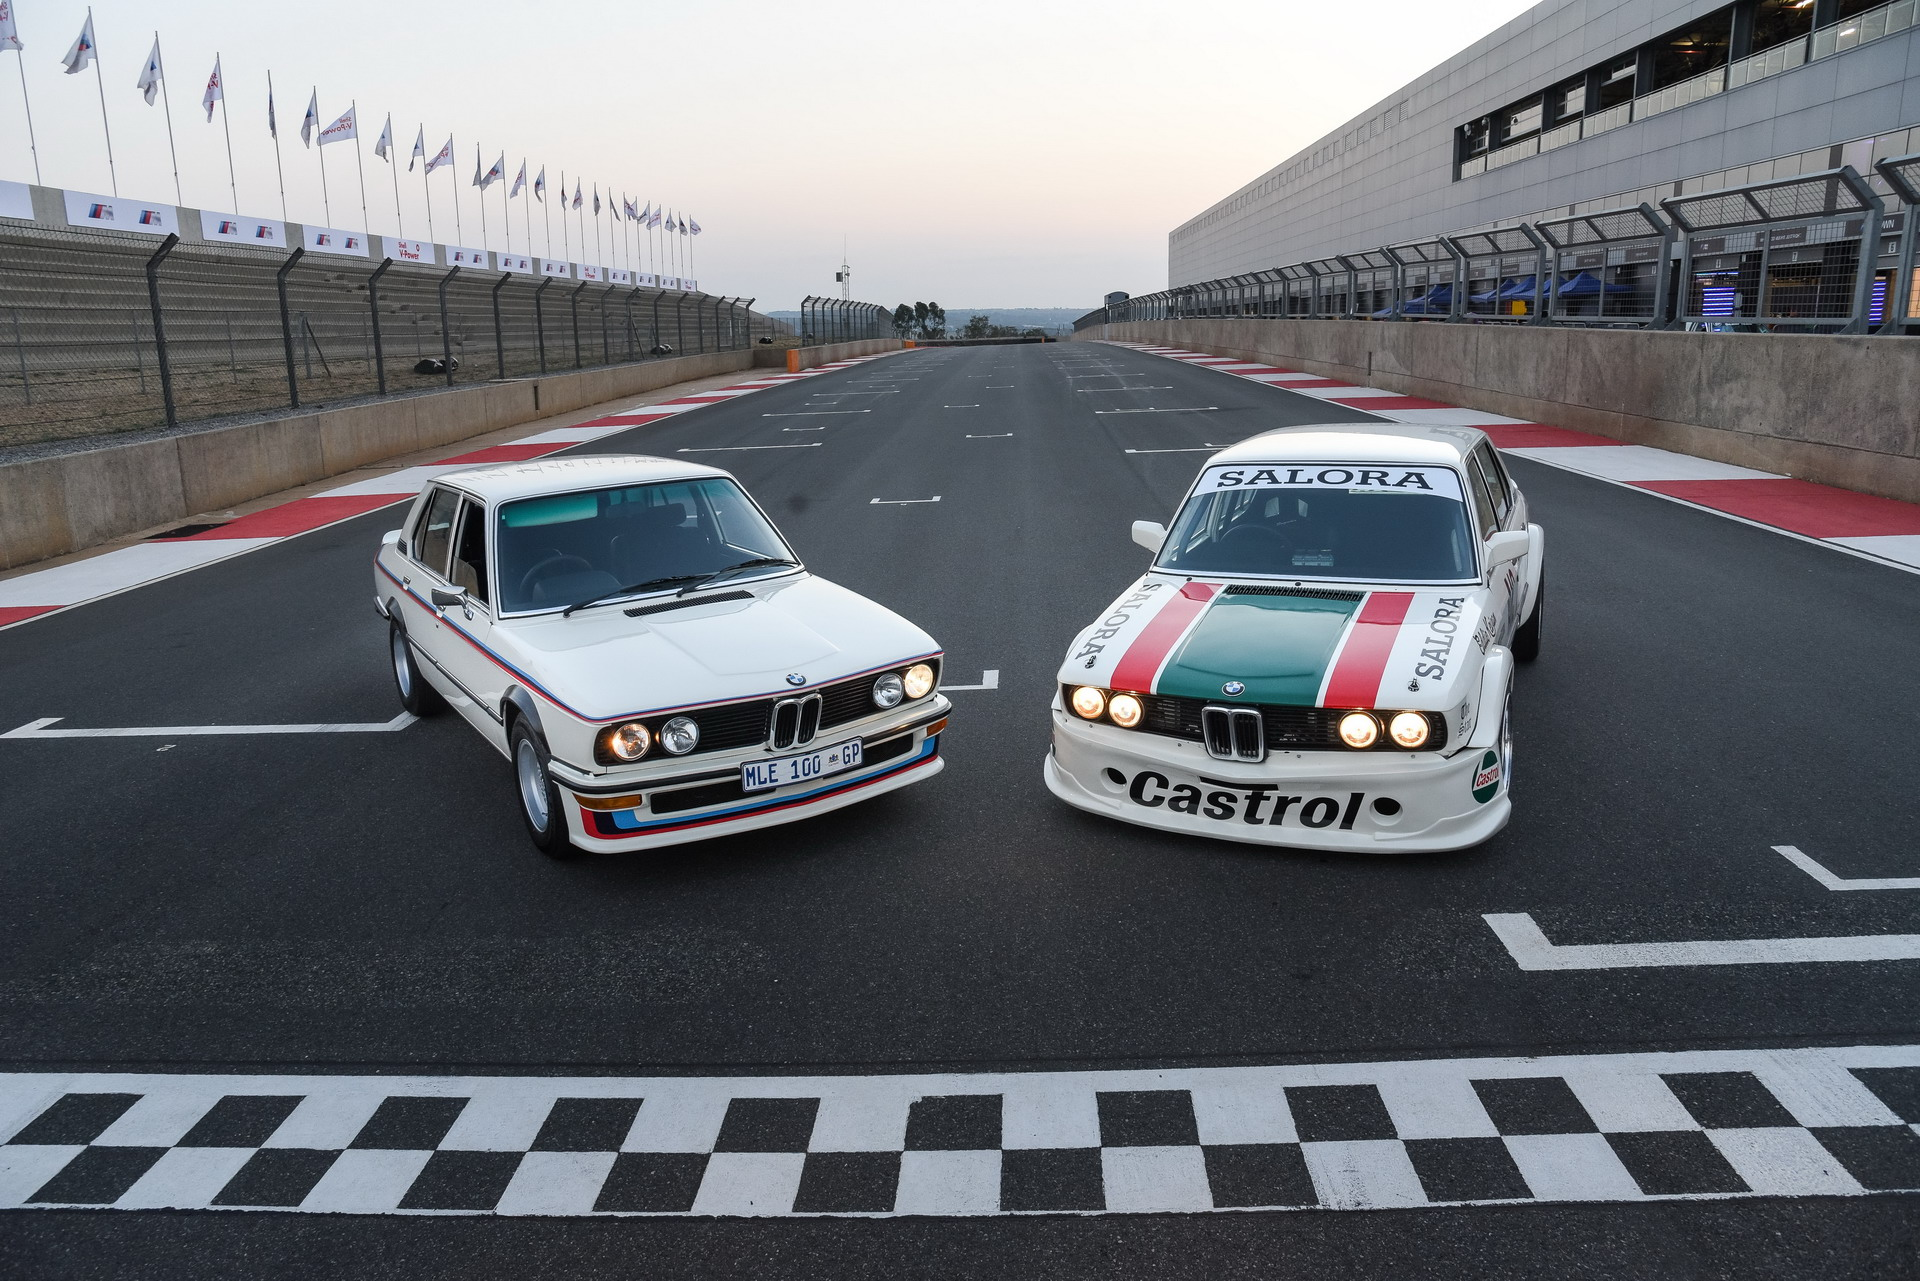 The racing BMW 530 MLE 21